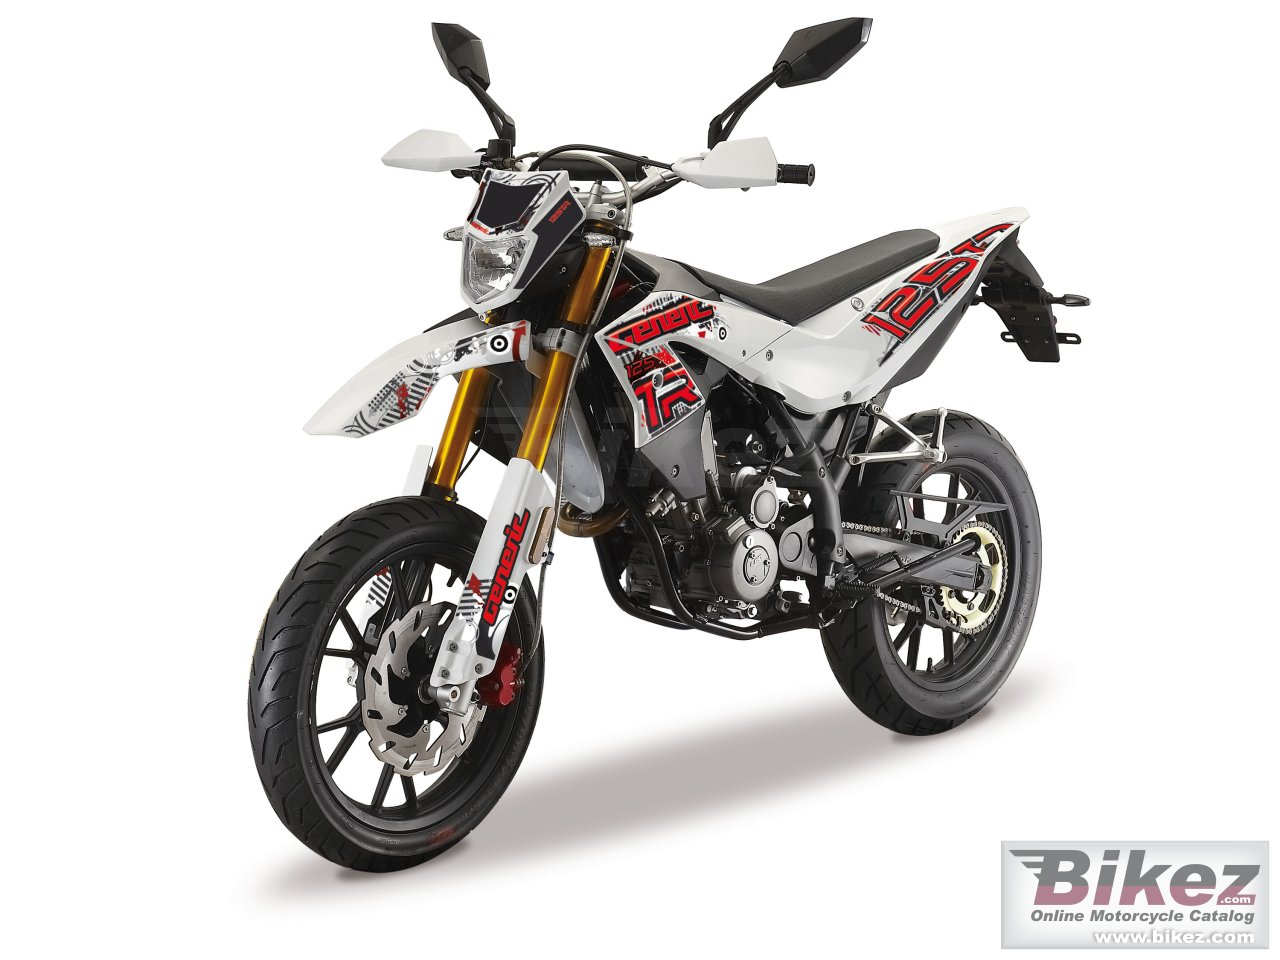 Big Generic tr 125 sm picture and wallpaper from Bikez.com